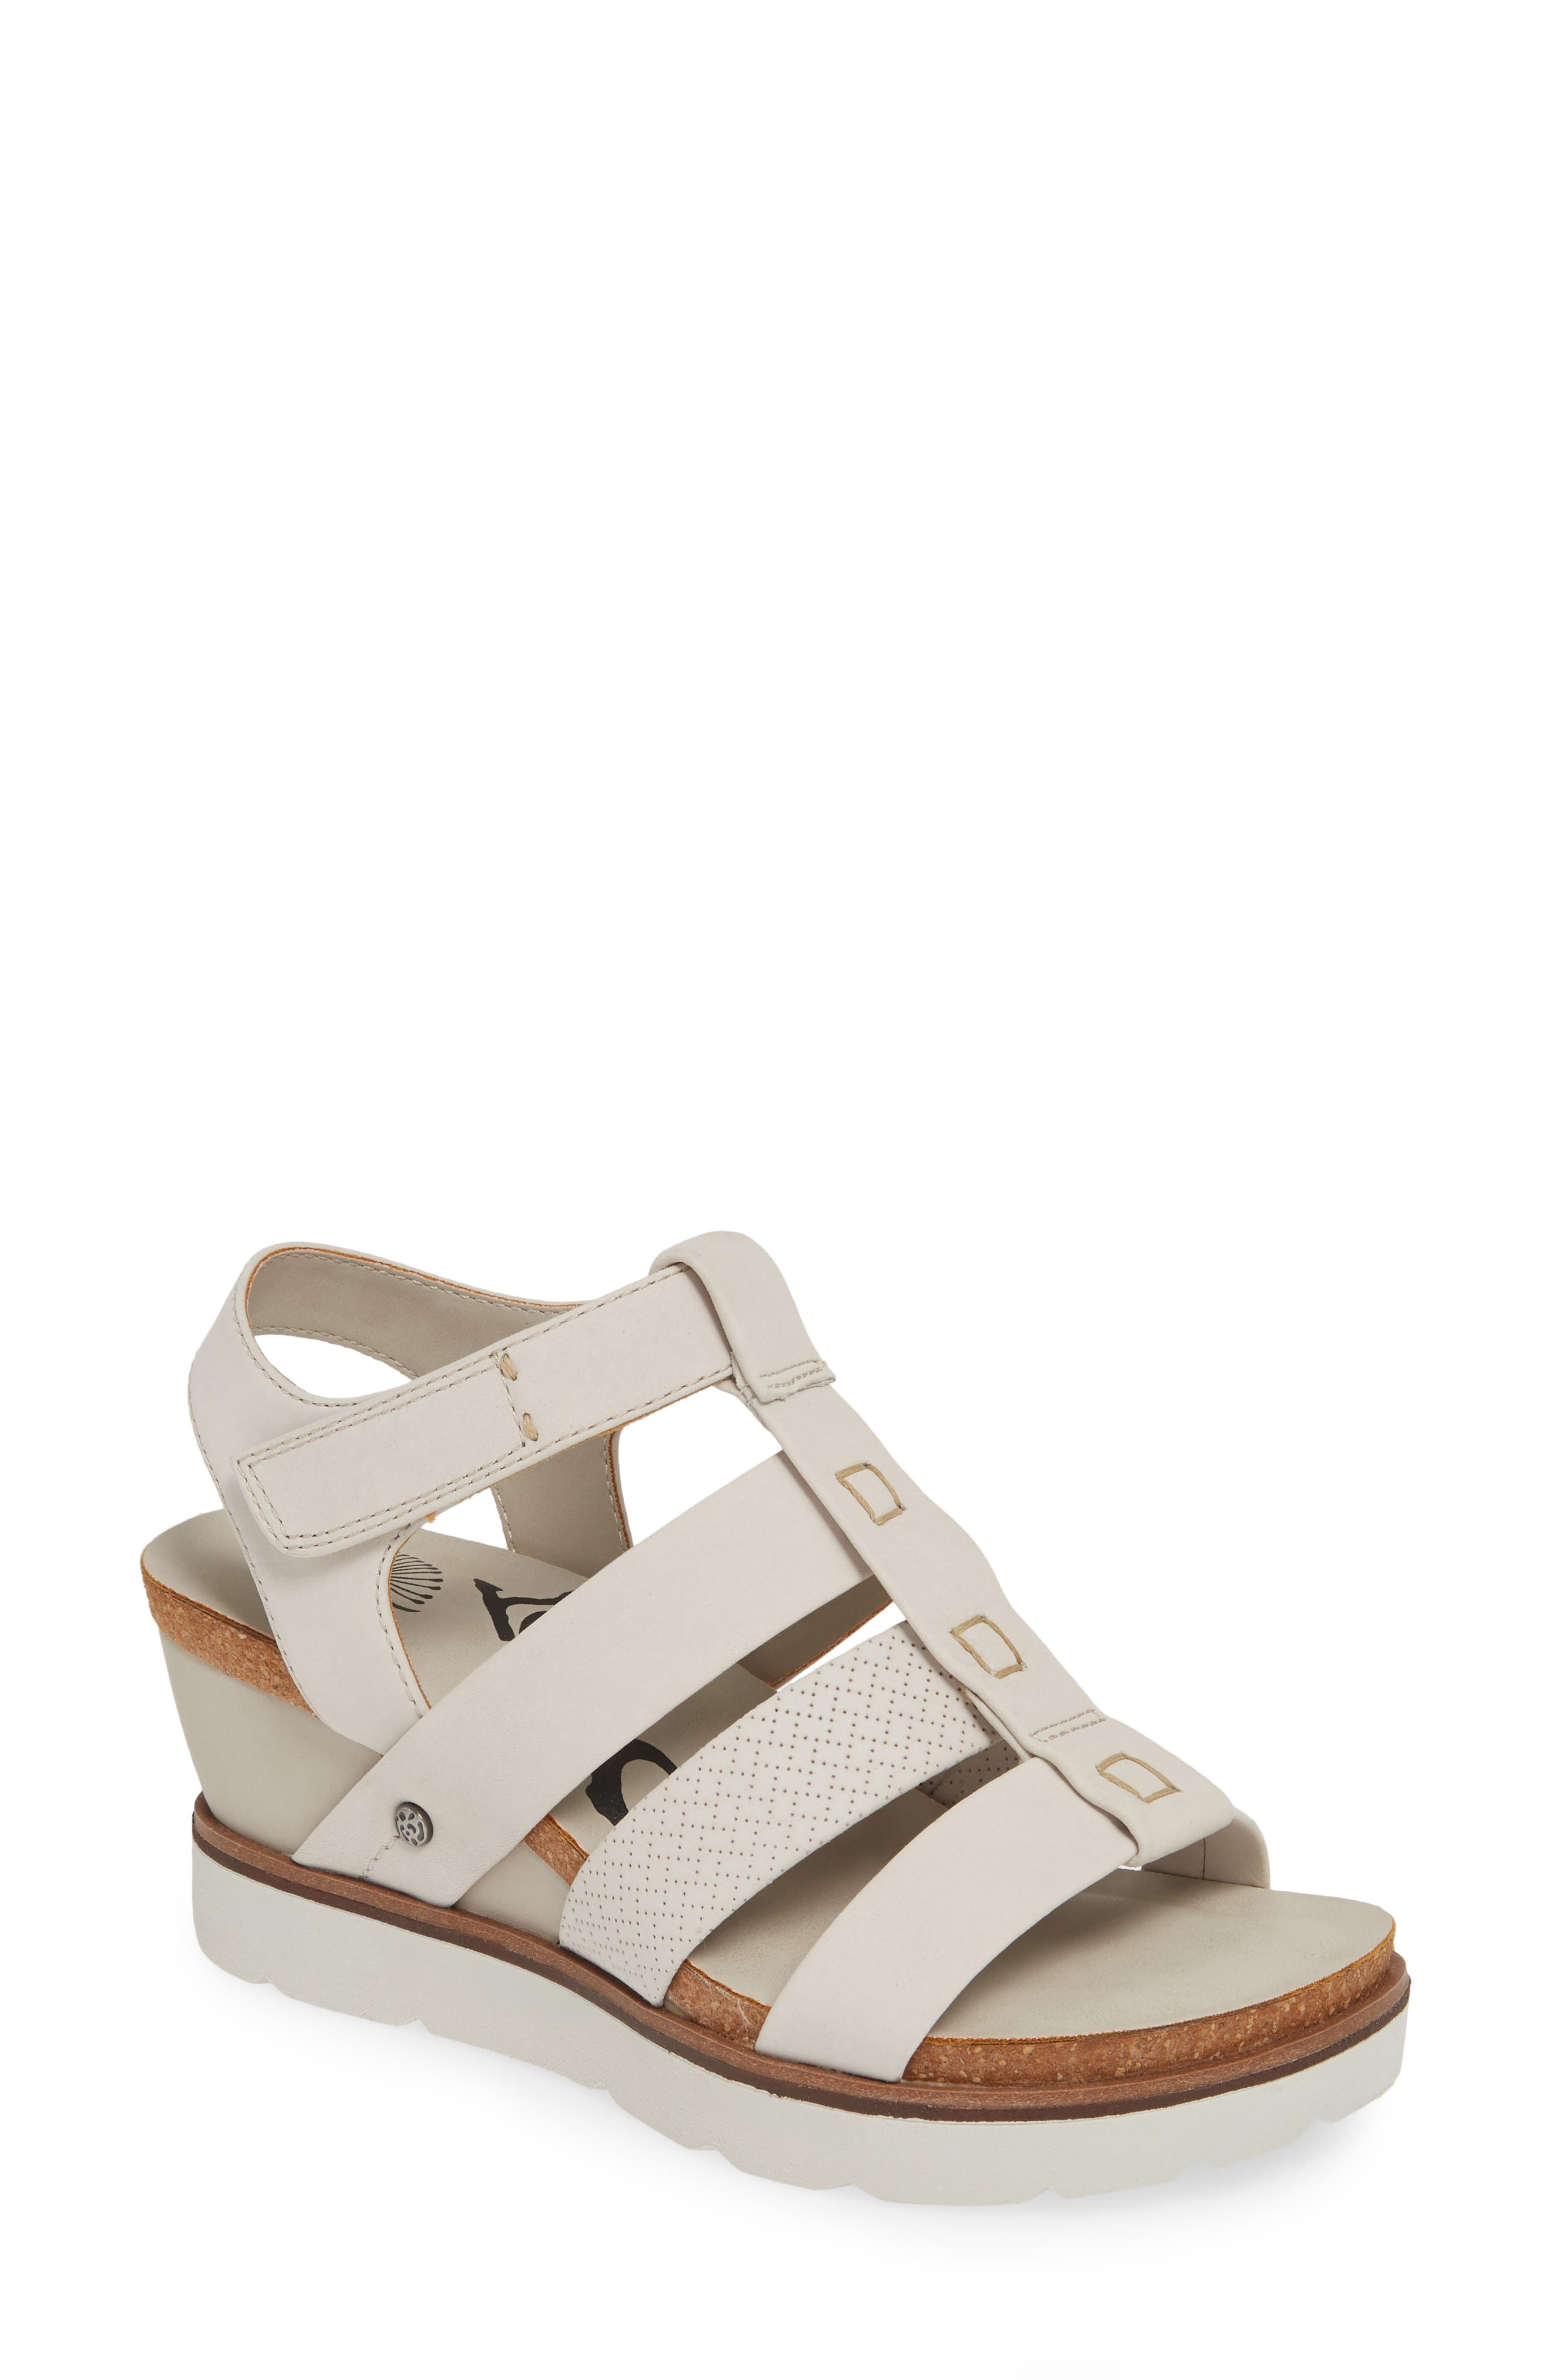 New Moon Wedge Sandal, Main, color, DOVE GREY LEATHER